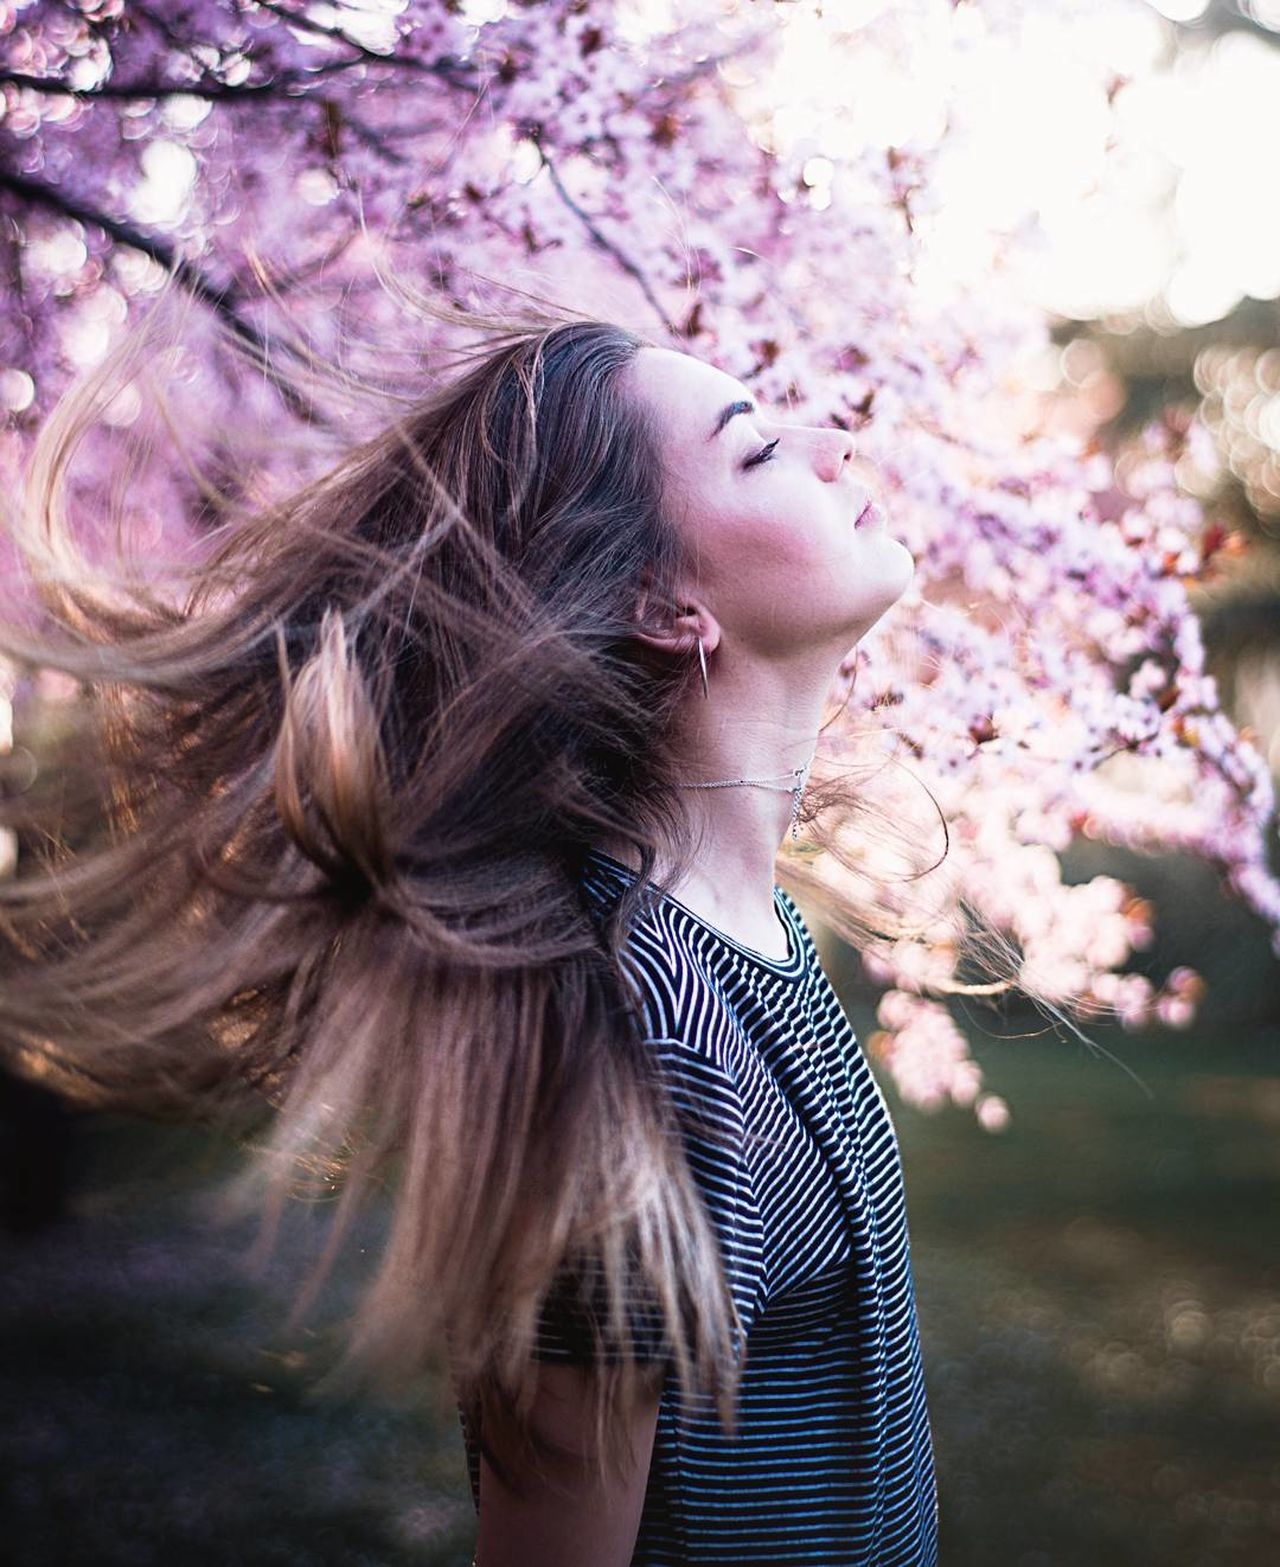 Breathing spring vibes One Woman Only Beautiful People Only Women Beautiful Woman Adults Only Adult Beauty Fashion One Person Young Adult One Young Woman Only People Beauty In Nature Outdoors Nature Human Body Part Women Flower Close-up Day